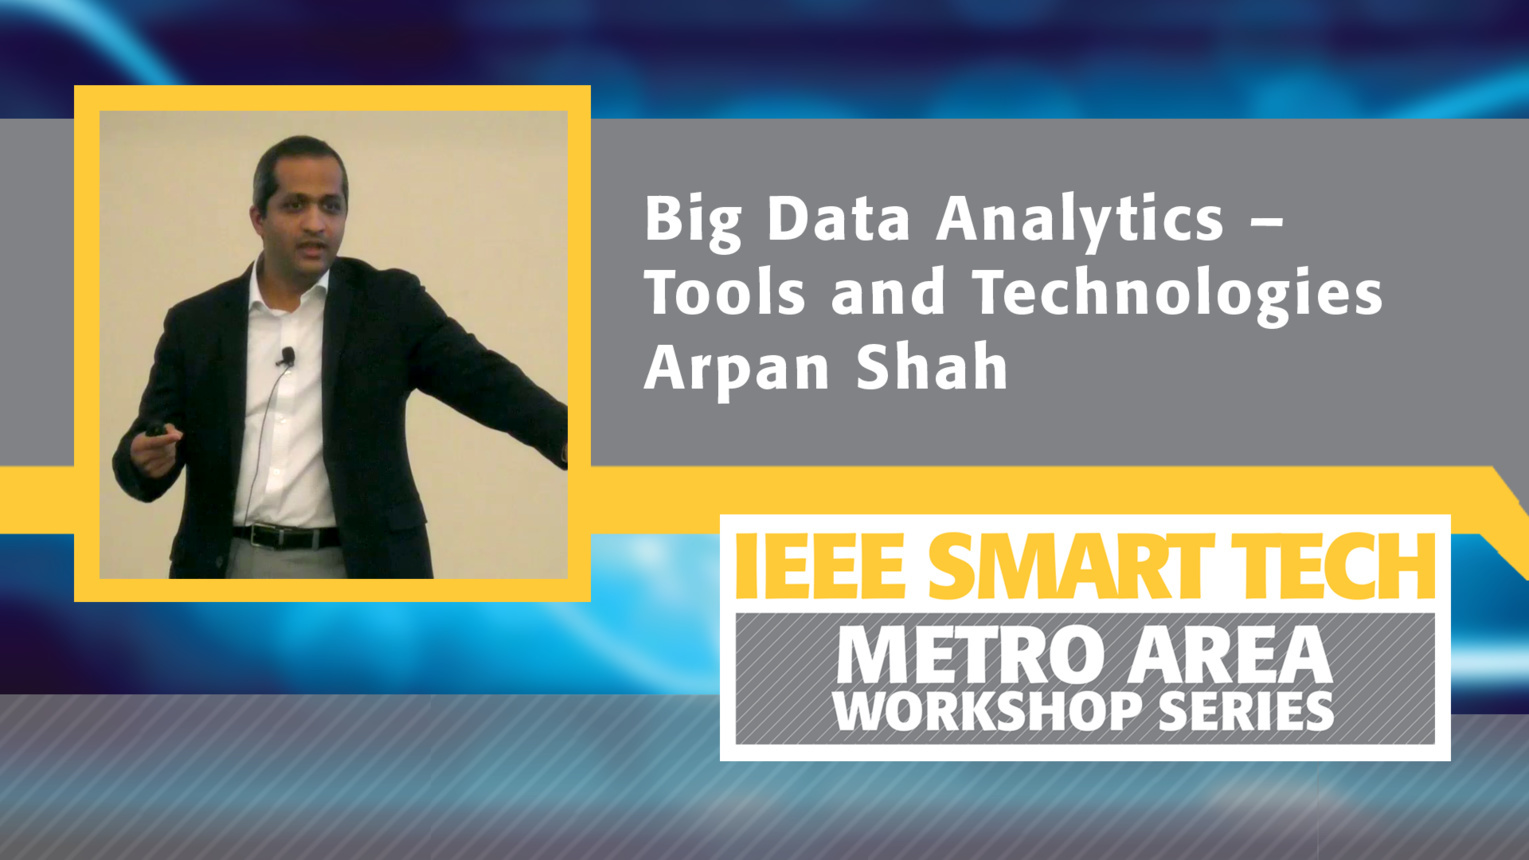 Big Data Analytics: Tools and Technologies - Big Data Analytics Tutorial Part 2